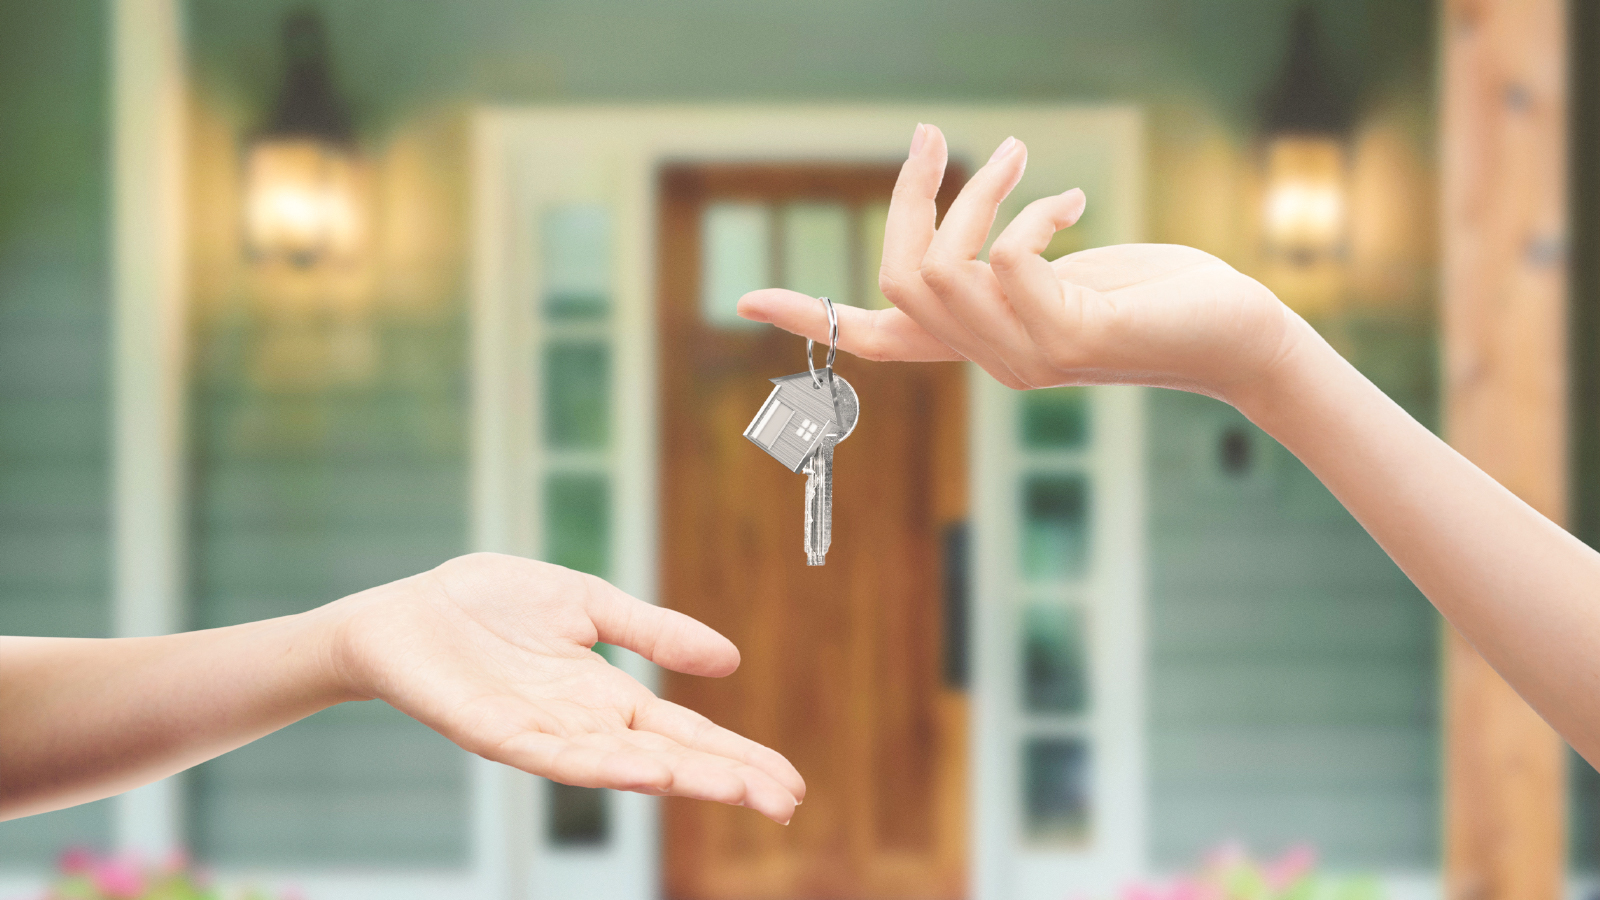 new home with key being exchanged